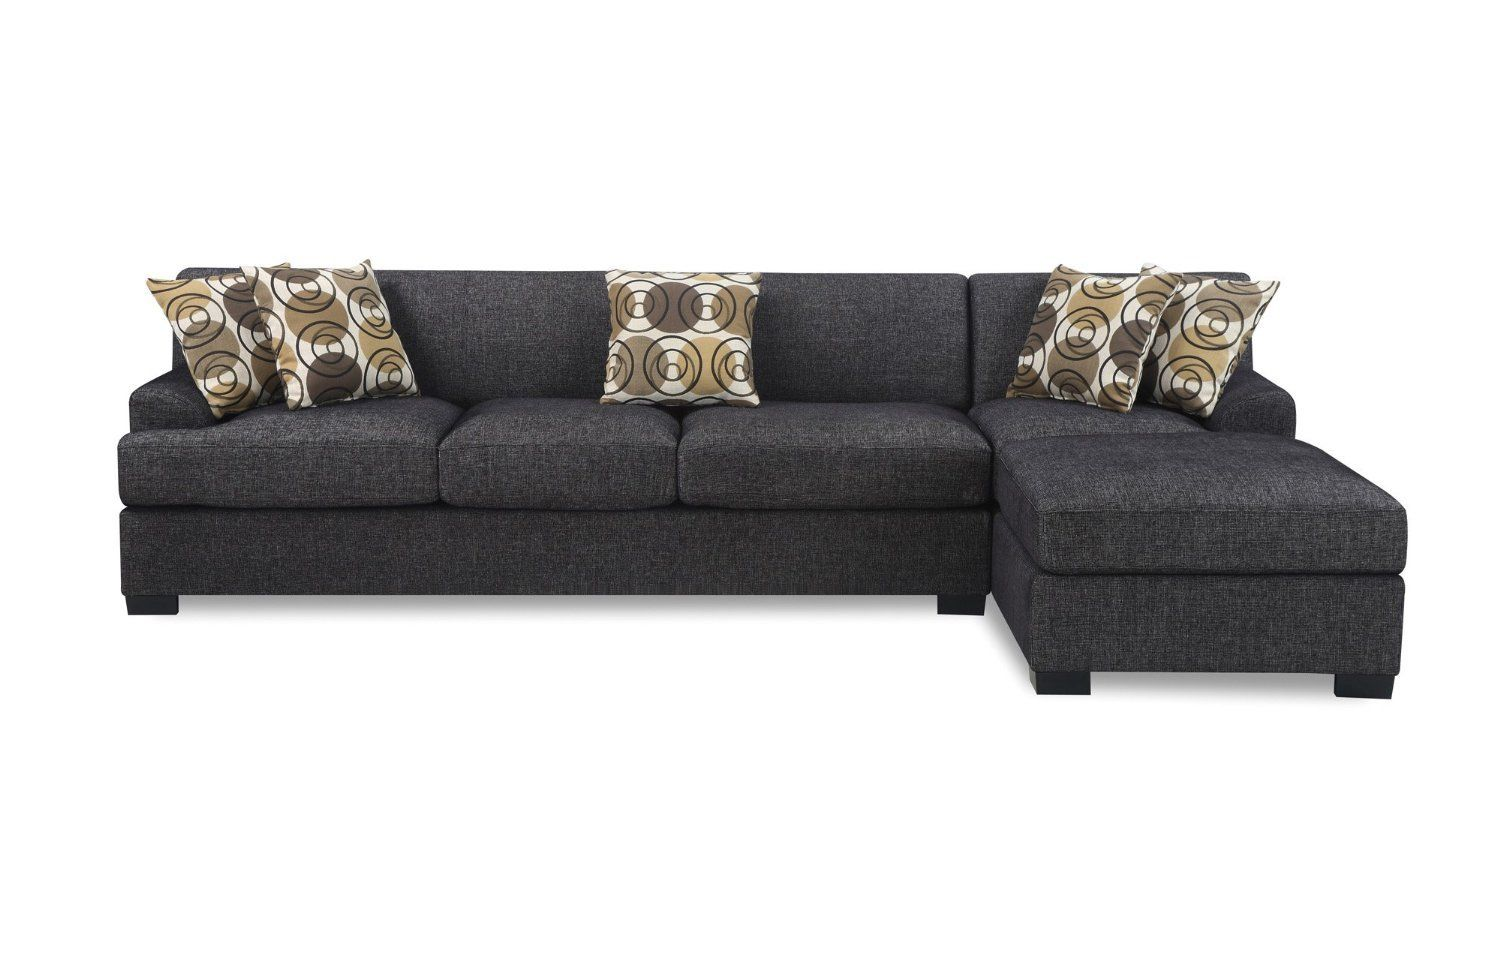 Signature Design By Ashley Driskell Mocha 2 Piece Sectional At Big